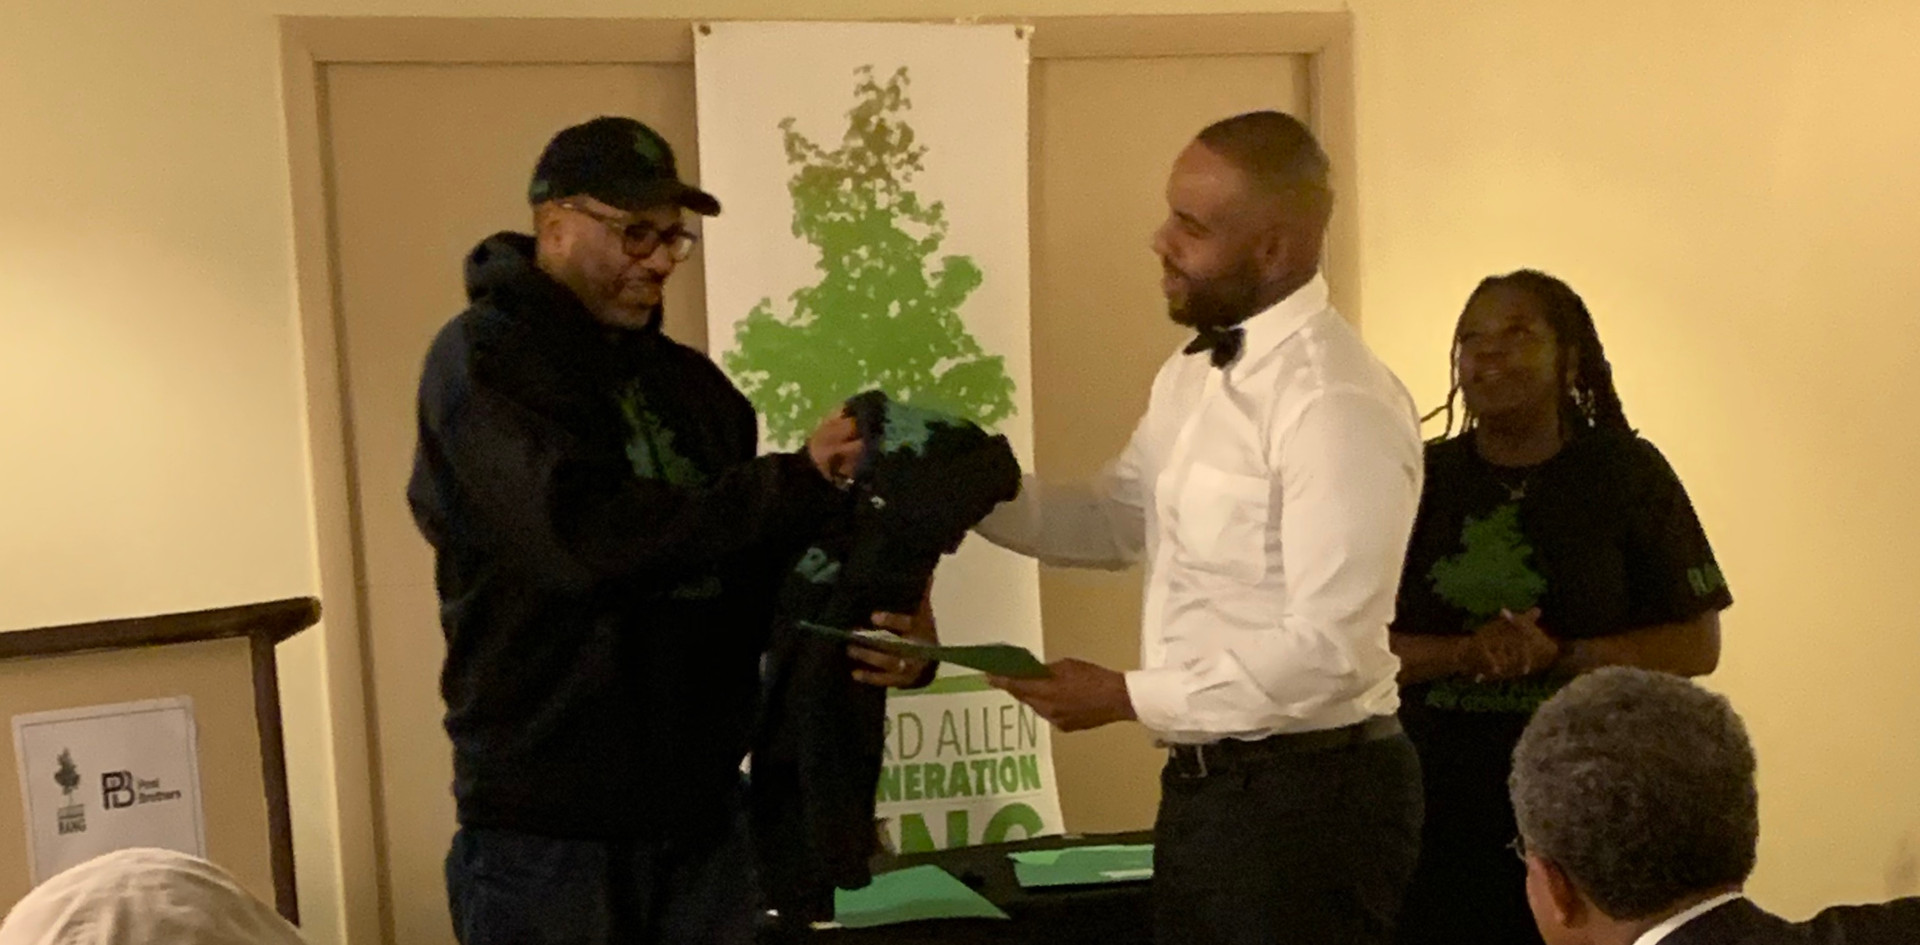 """At the recent Richard Allen New Generation(RANG) Pre-Apprentice Program's Graduate Recognition Dinner, held at the Gladys B. Jacobs Manor, at 1100 Fairmount Avenue, RANG President Bernard Gorham, (standing, left) presents a completion certificate and a """"First Class Of Graduates"""" RANG hoodie to pre-apprentice graduate, and new employed apprentice, Everette Burk."""